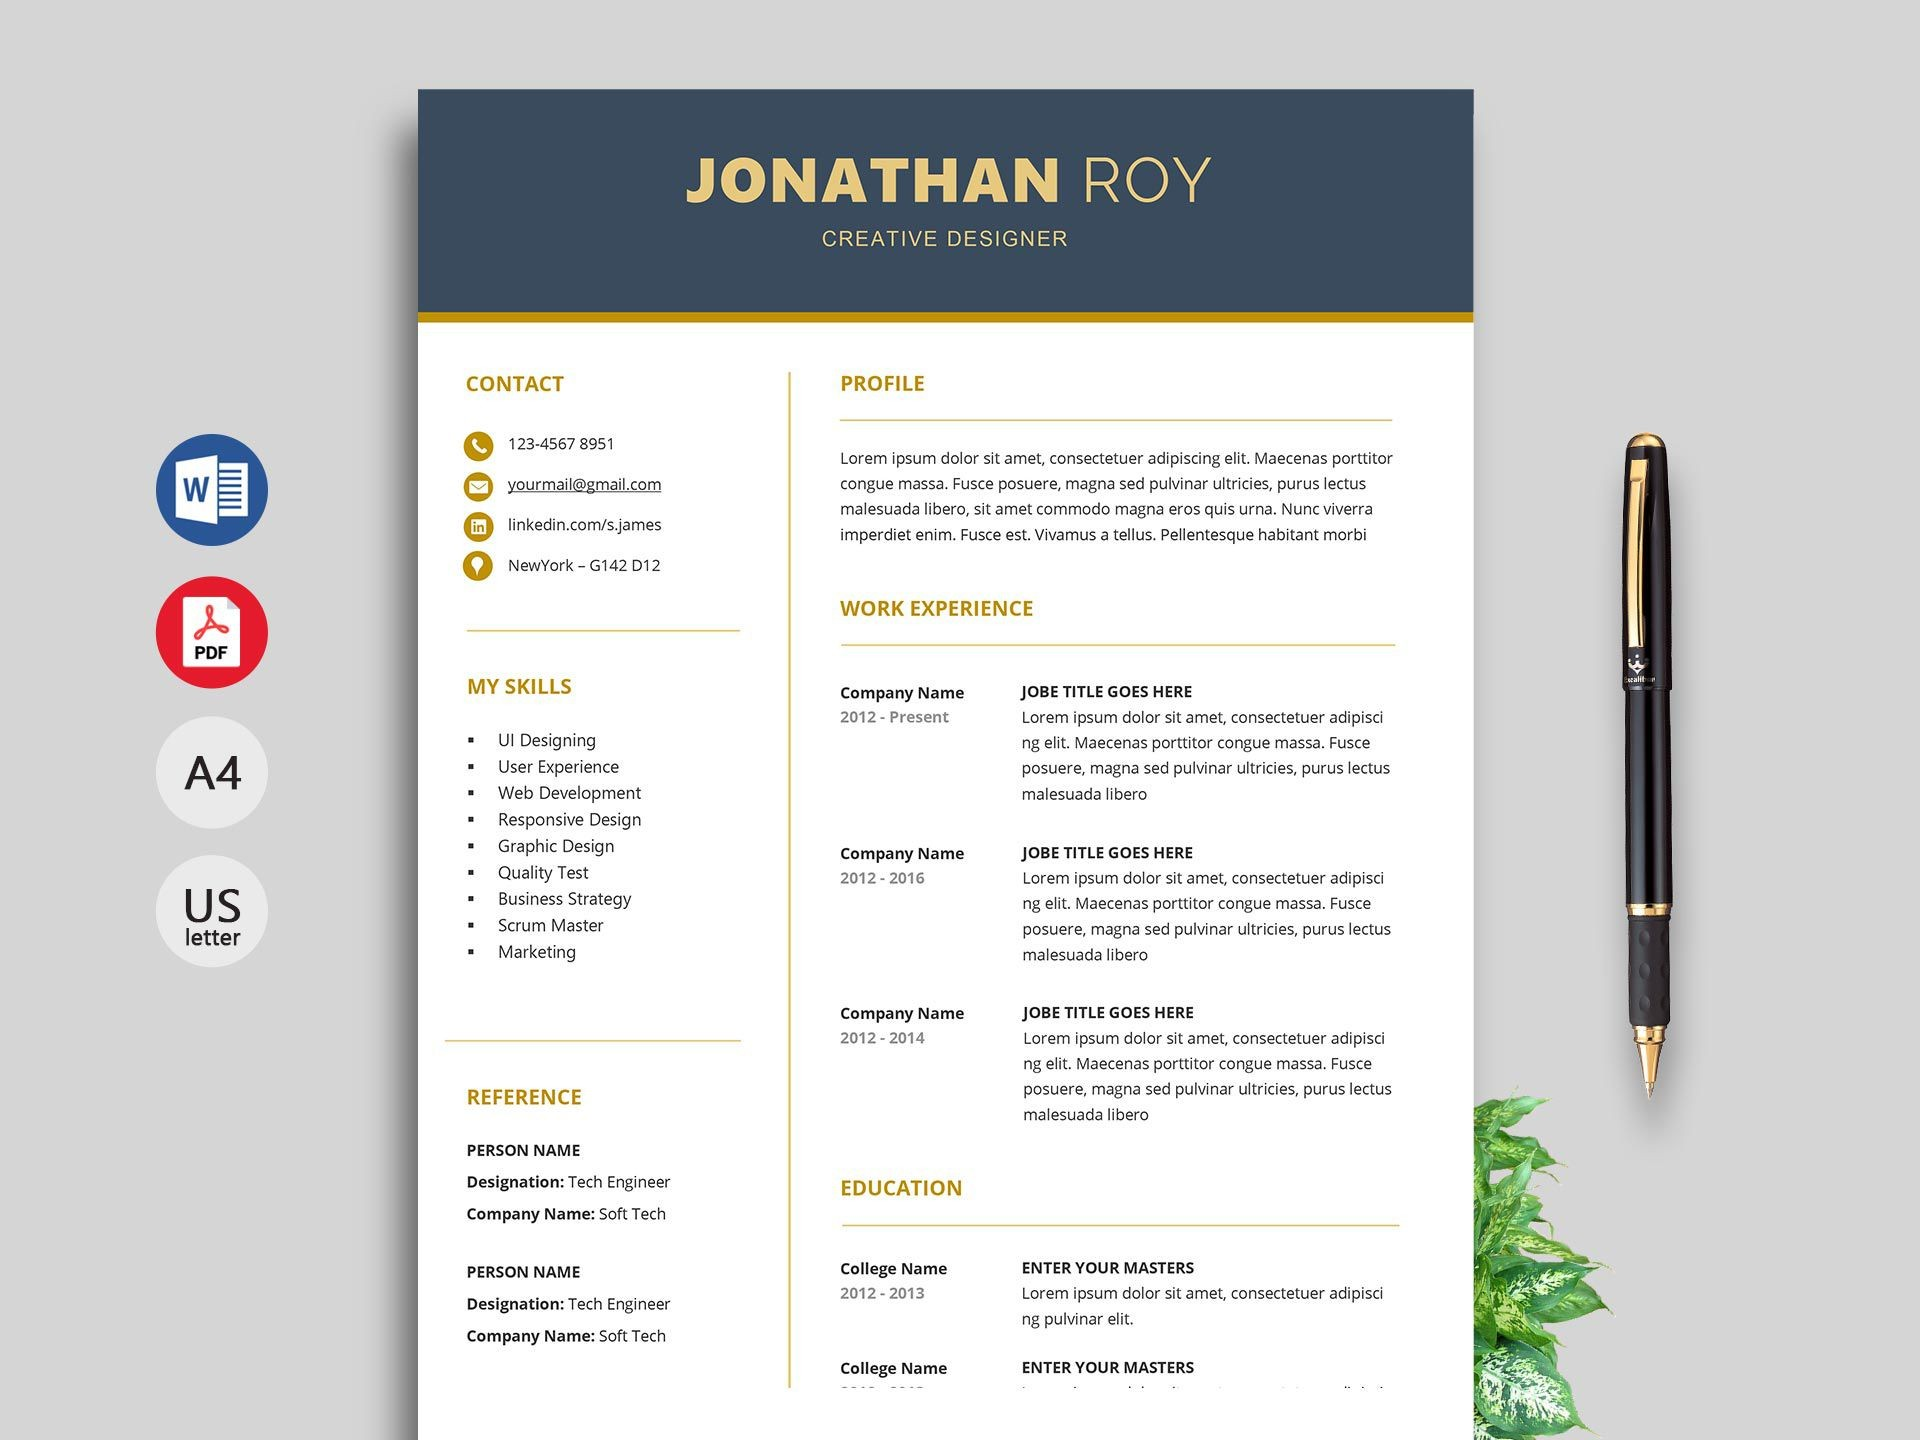 005 Archaicawful Download Template For Word Idea  Wordpres Free Resume 2007 Addres Label1920